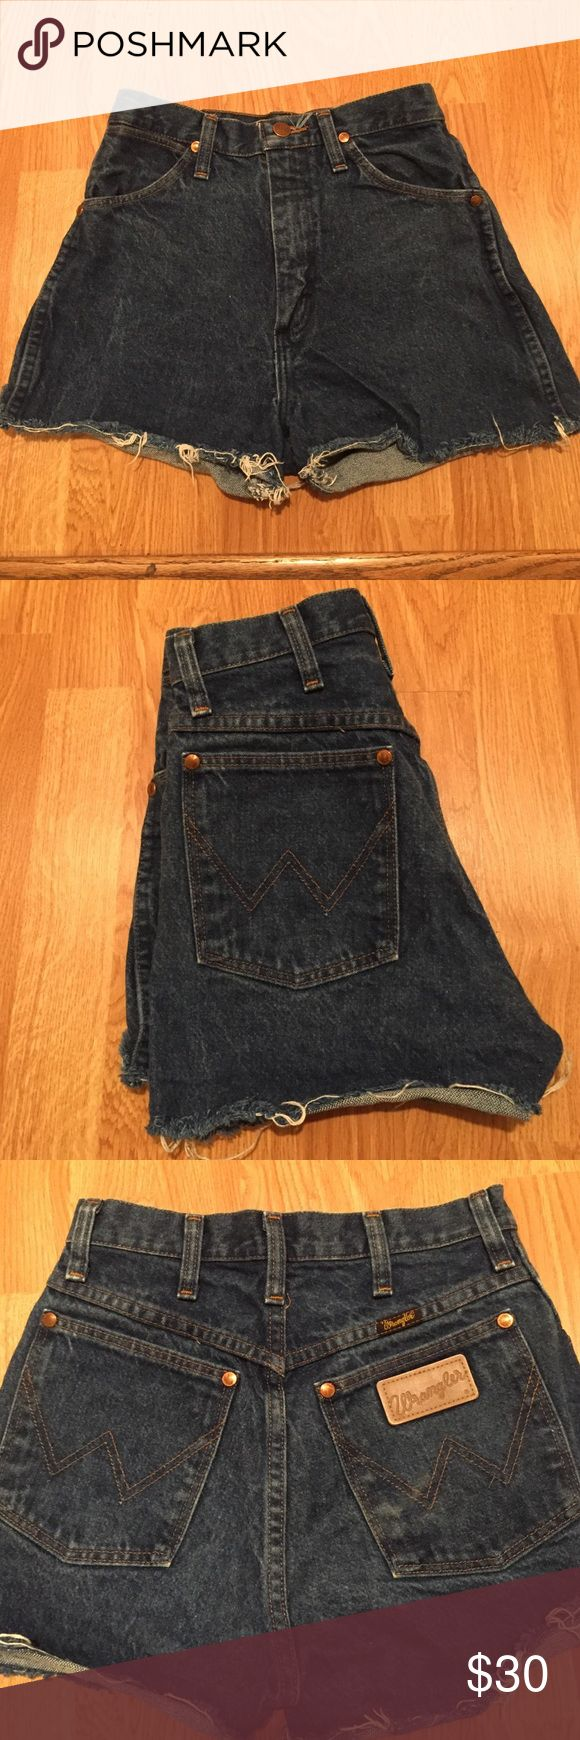 Jean cutoff shorts Dark blue denim cut off shorts. Awesome wranglers. Fit like a glove, lightly worn but in flawless condition!! Comfortable but not stretchy. Just don't fit me anymore! Wrangler Shorts Jean Shorts